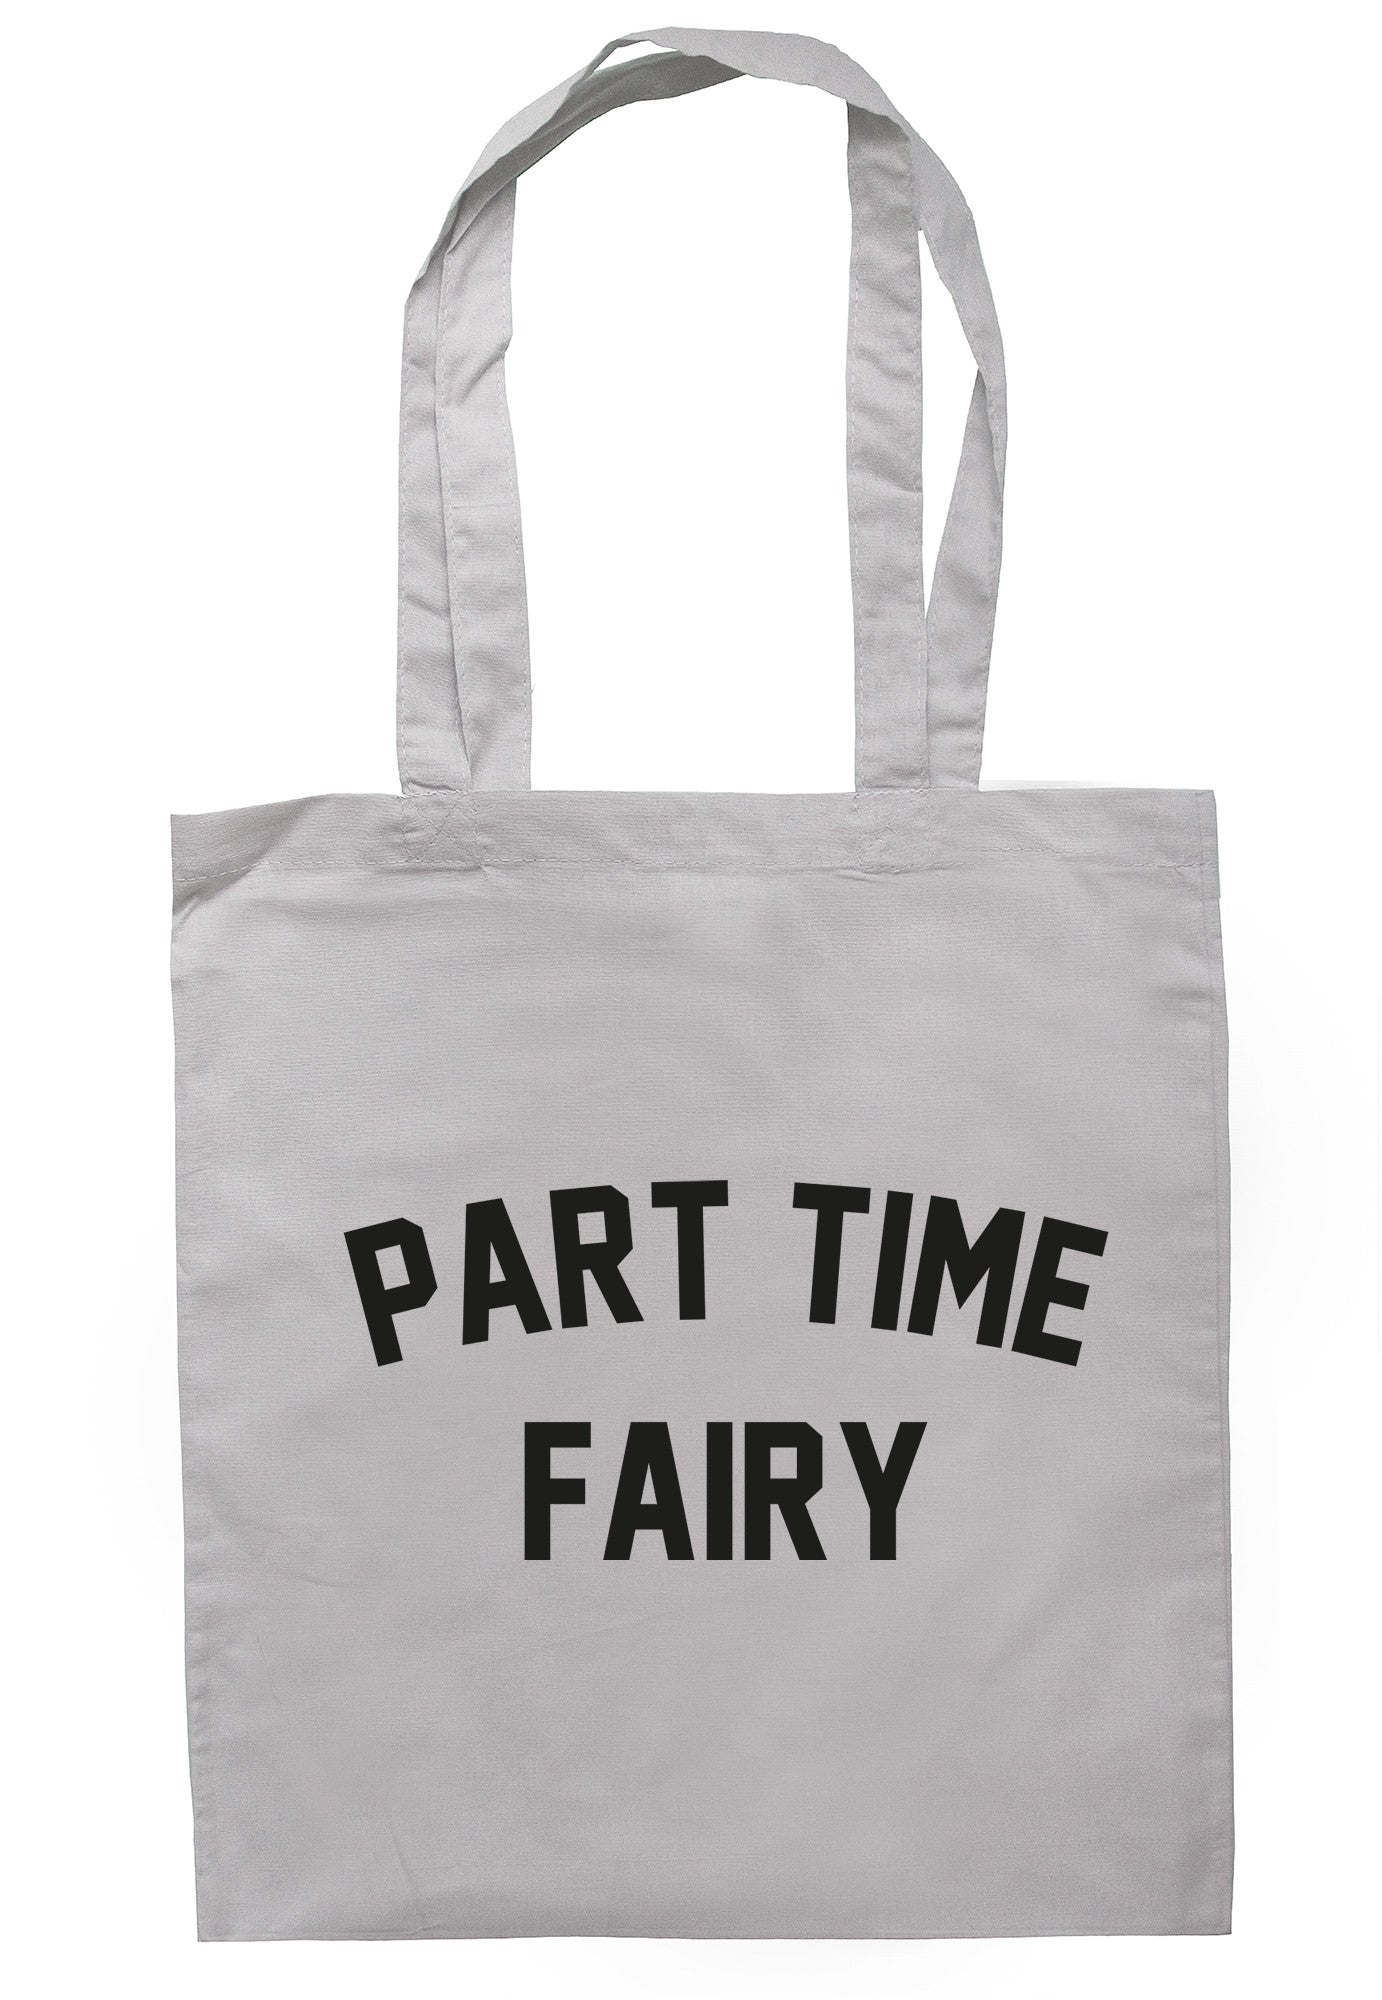 Part Time Fairy Tote Bag TB0549 - Illustrated Identity Ltd.